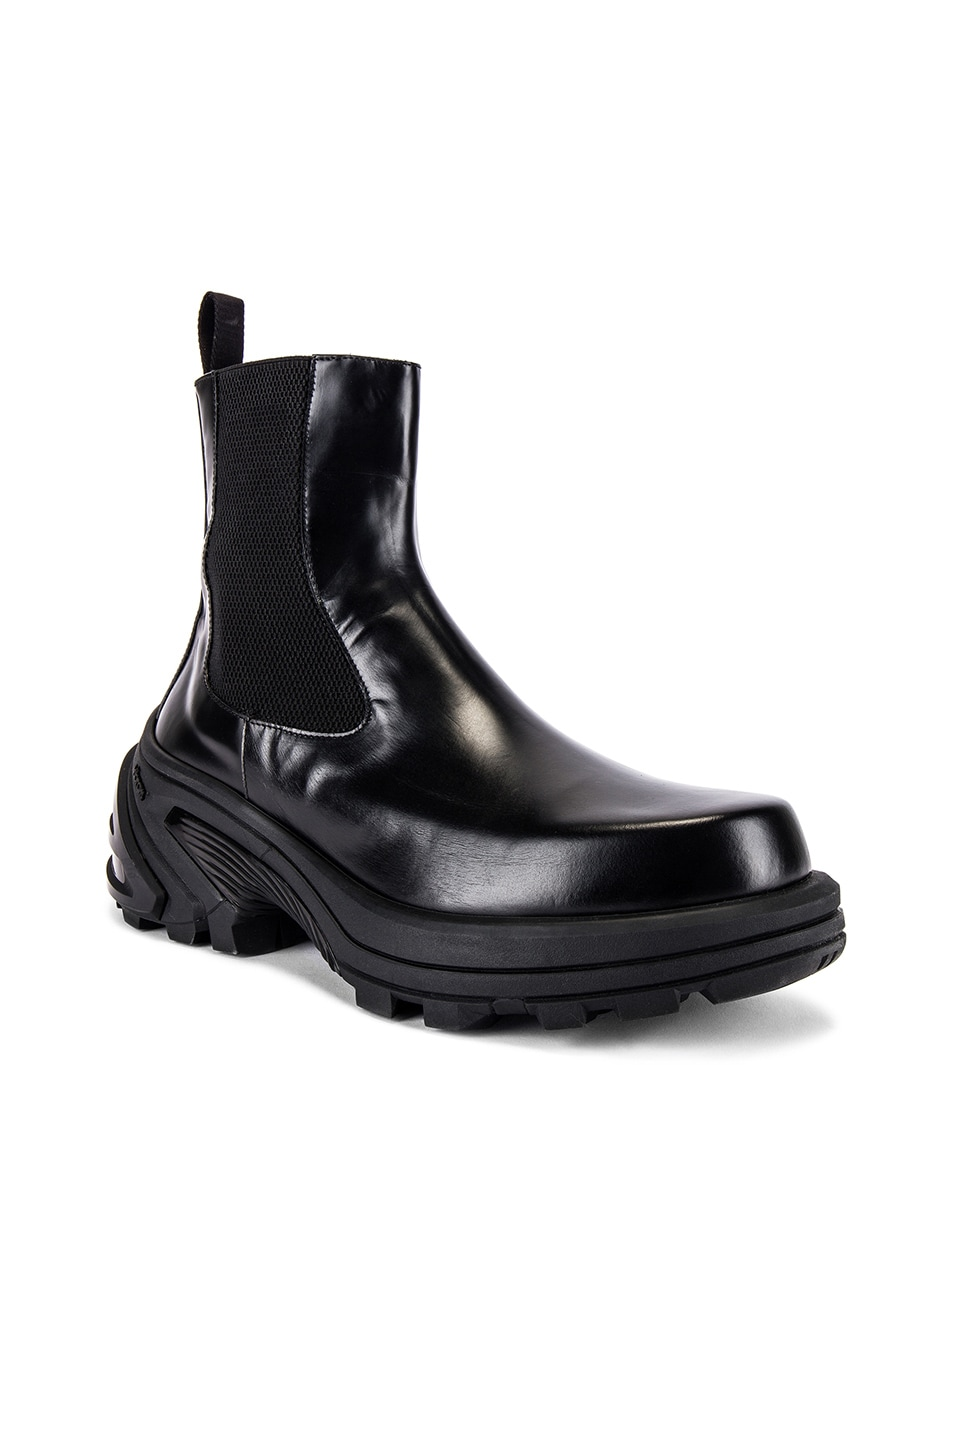 Image 1 of 1017 ALYX 9SM Chelsea Boots With Removable Vibram Sole Var. 2 in Black